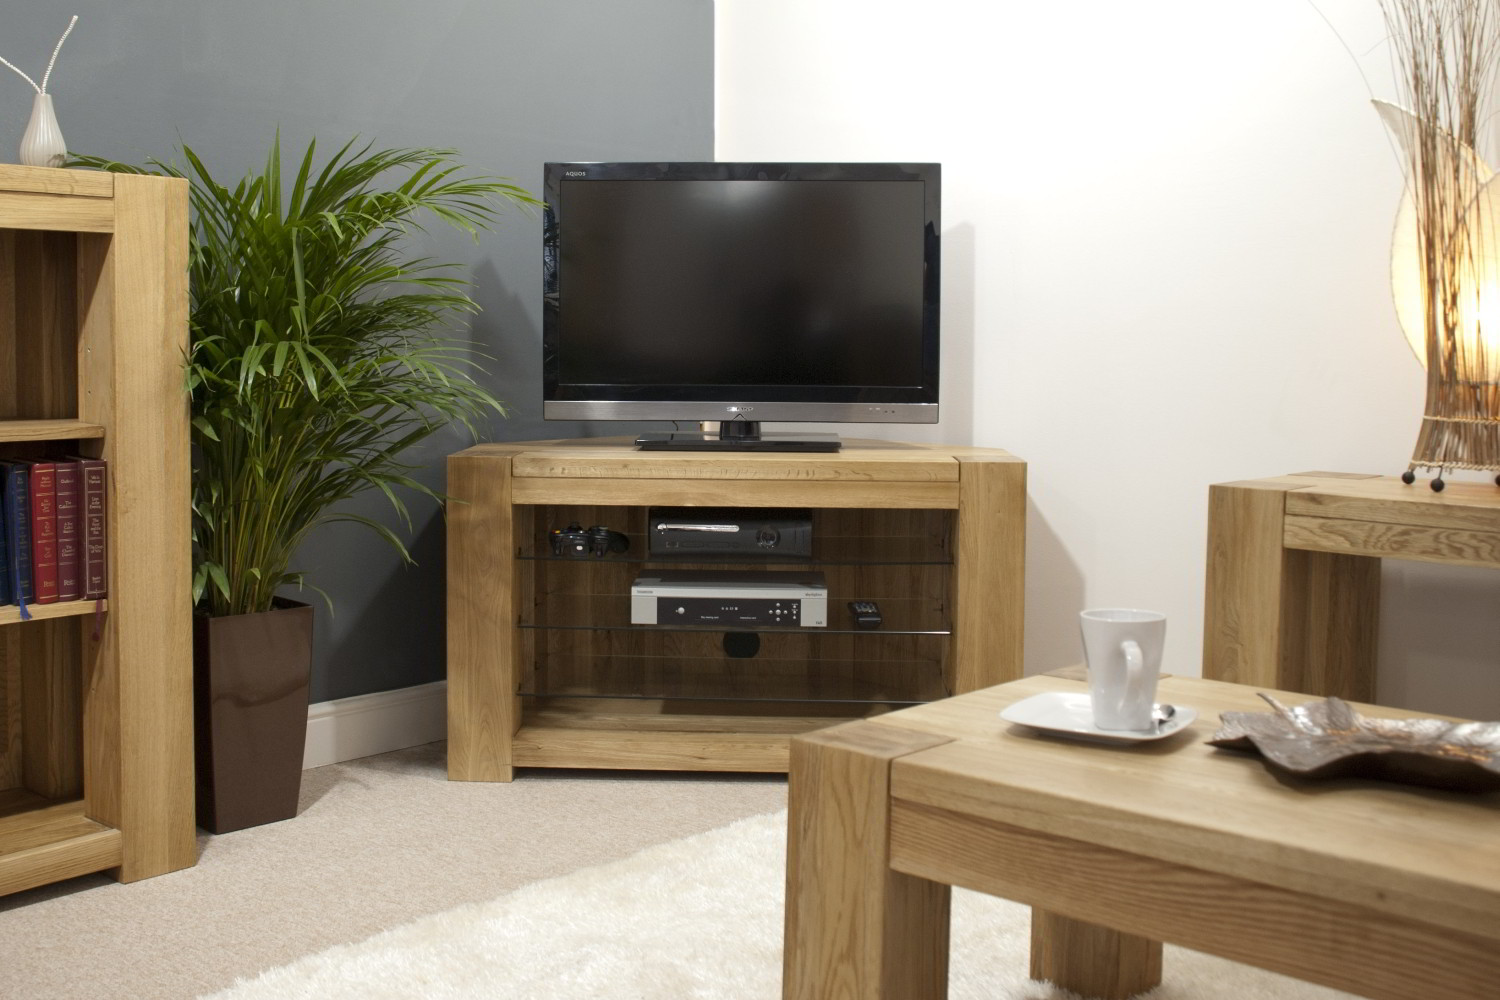 Pemberton solid oak living room furniture corner television cabinet stand unit ebay - Designs of tv cabinets in living room ...